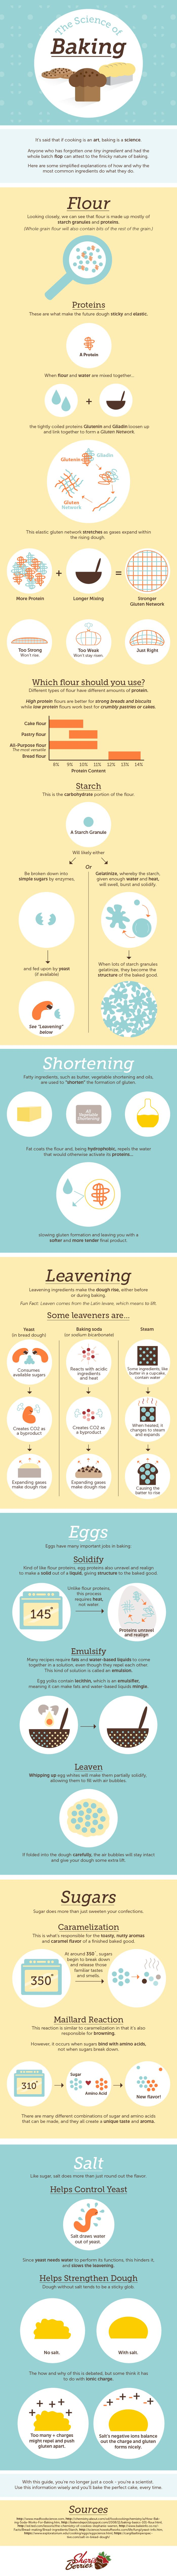 The Science of Baking #Infographic #Baking #Food